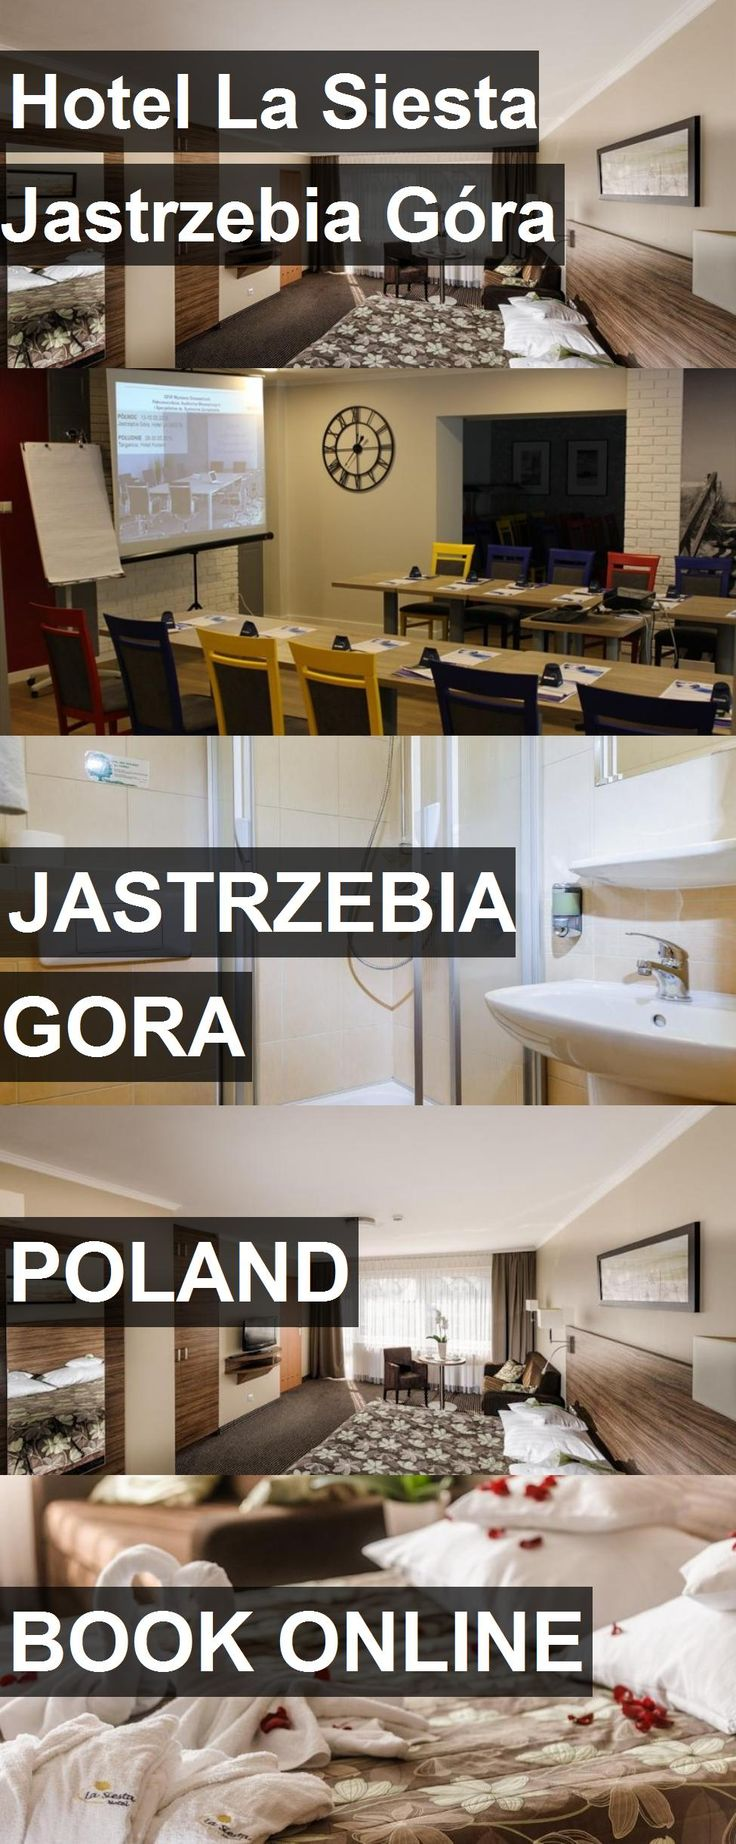 Hotel La Siesta Jastrzebia Góra in Jastrzebia Gora, Poland. For more information, photos, reviews and best prices please follow the link. #Poland #JastrzebiaGora #travel #vacation #hotel